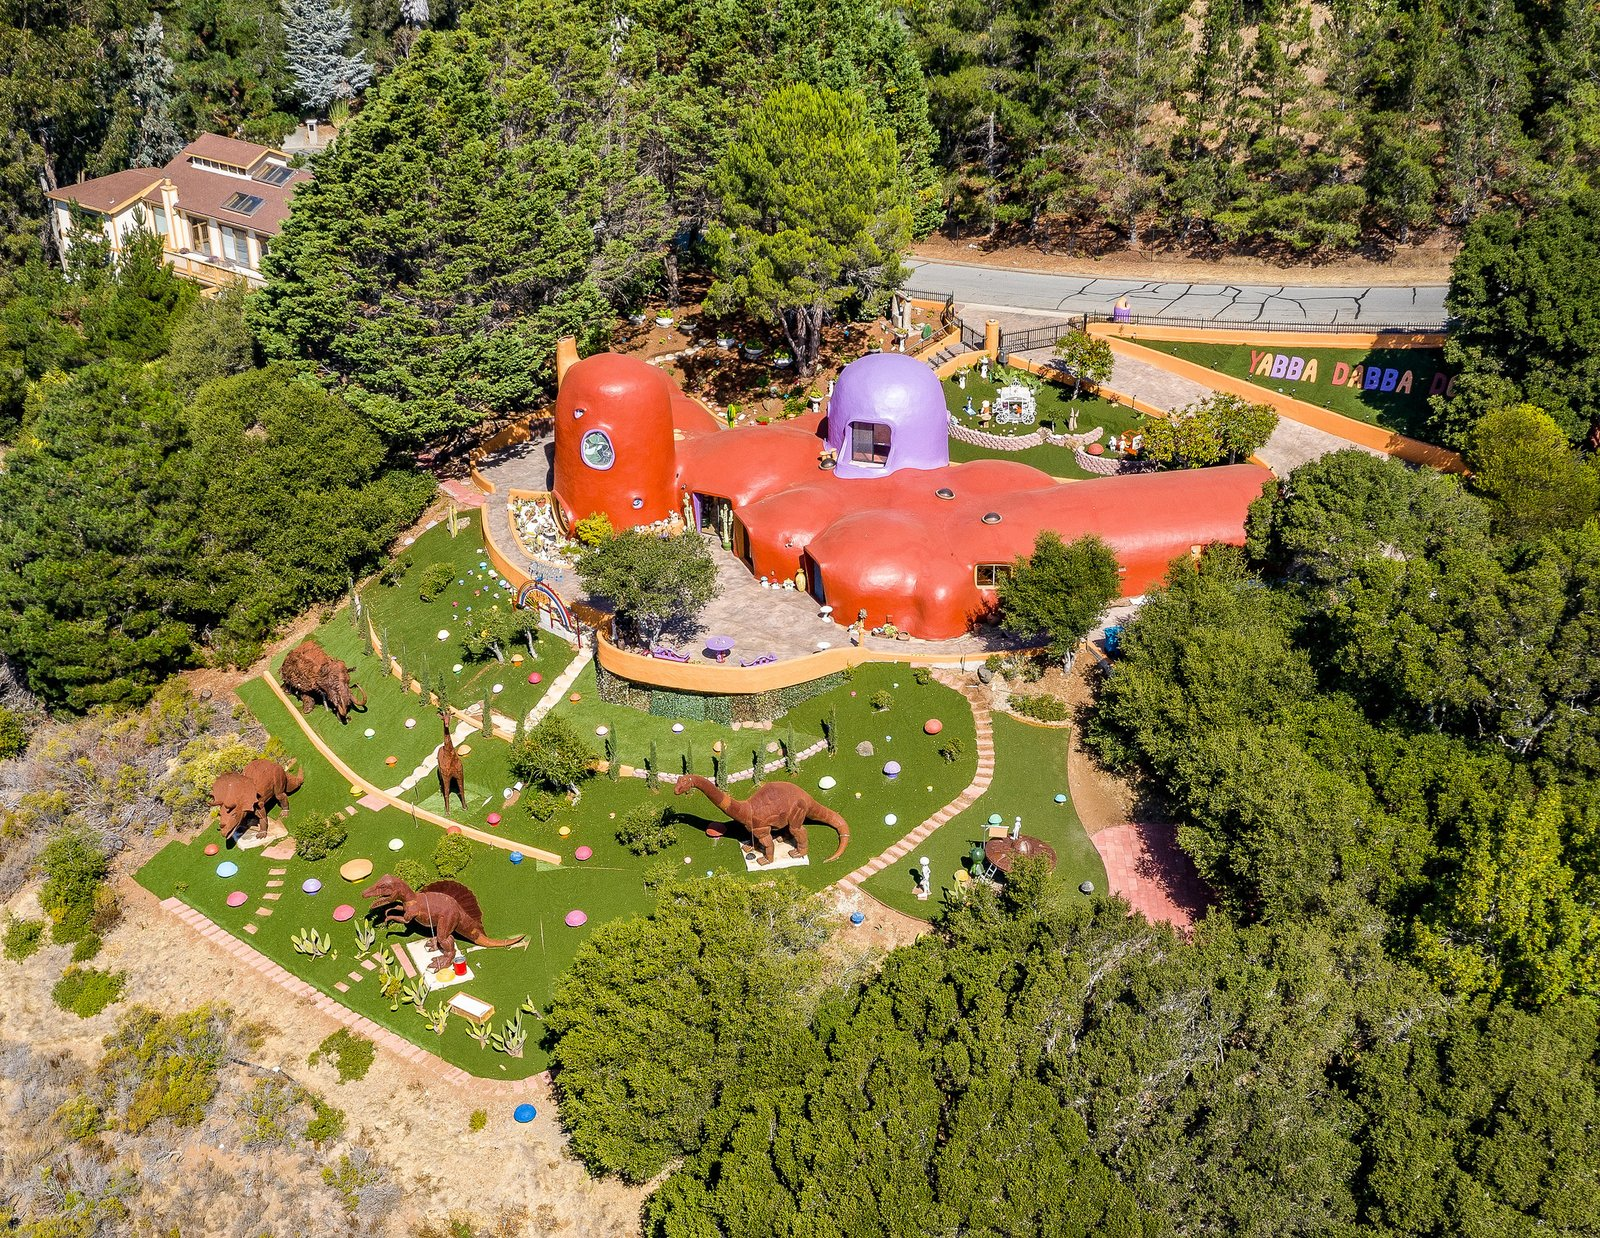 Exterior, Stone Siding Material, Curved RoofLine, and House Building Type  Best Photos from Northern California's Infamous Flintstone House Is Being Sued as a 'Public Nuisance'